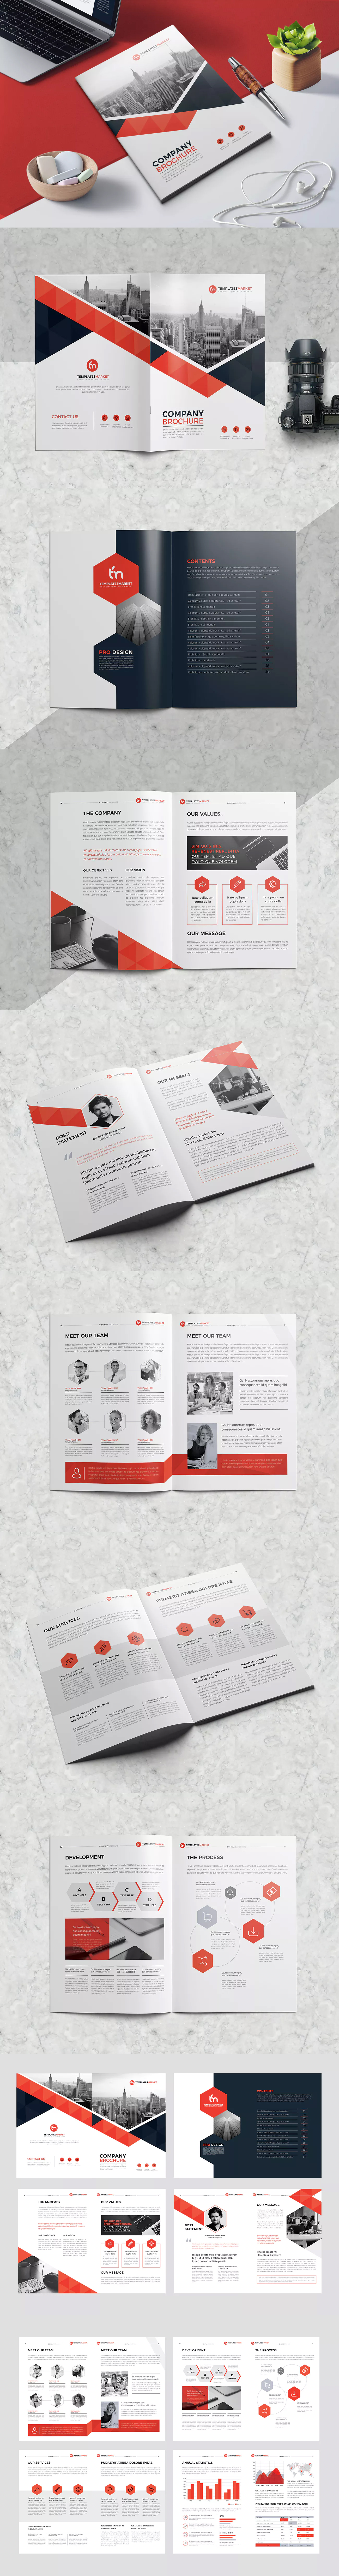 TM Company Profile Template InDesign INDD A4 | Graphic Design ...